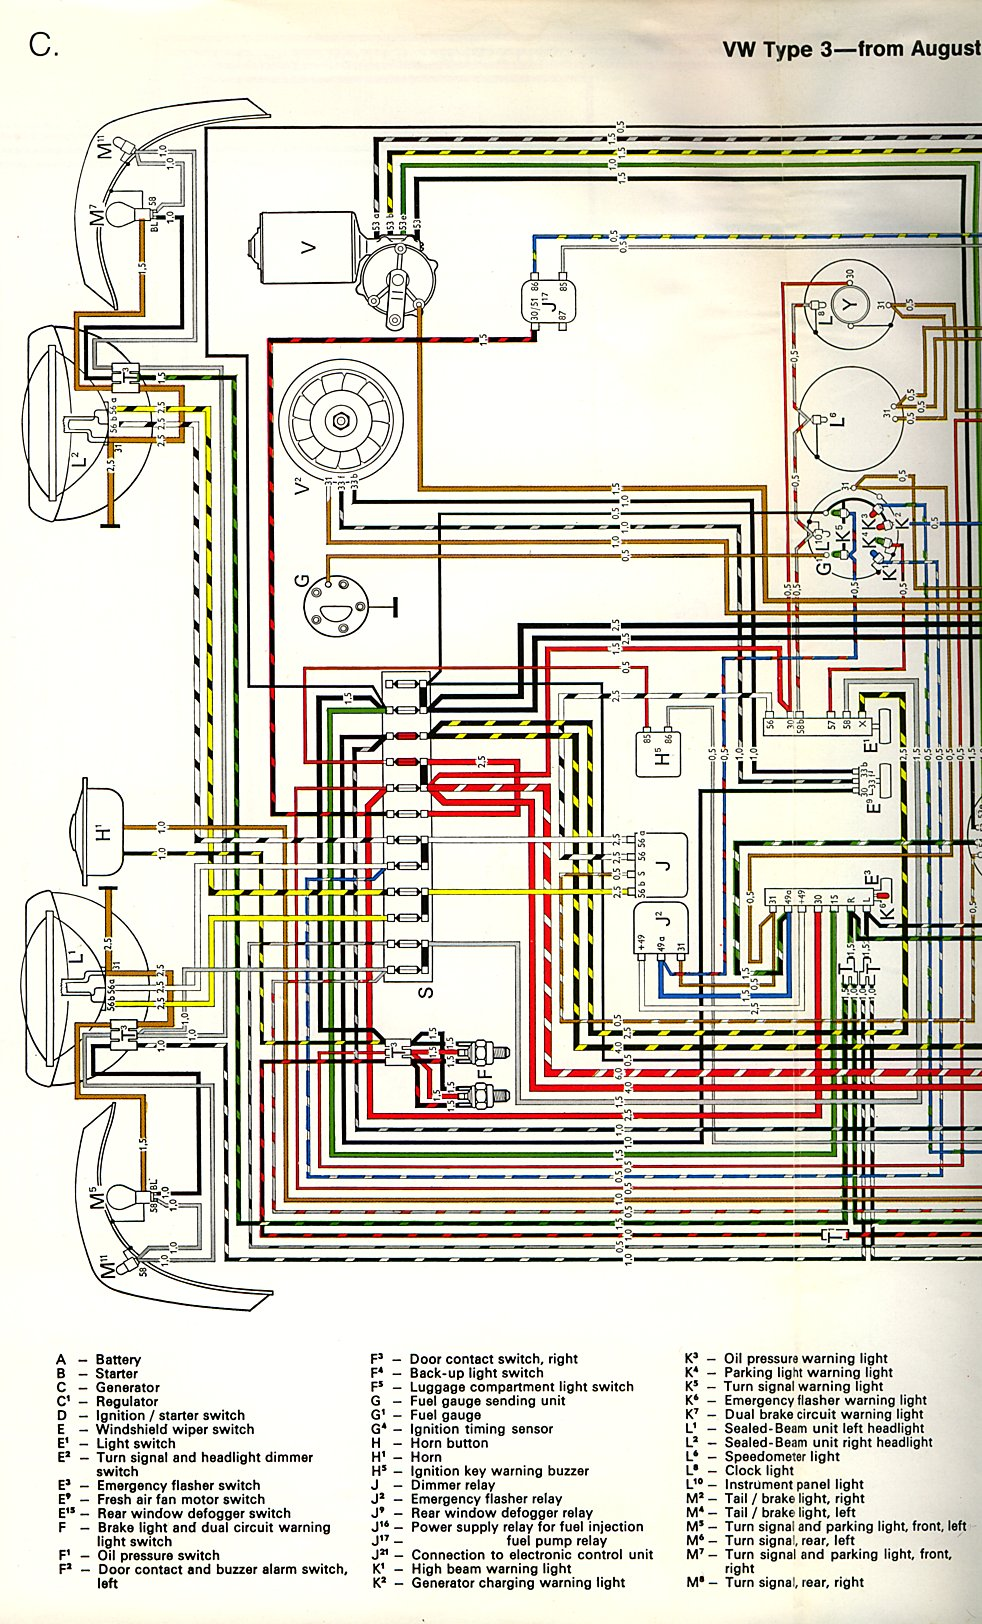 type3_72a thesamba com type 3 wiring diagrams 1973 vw wiring diagram at reclaimingppi.co